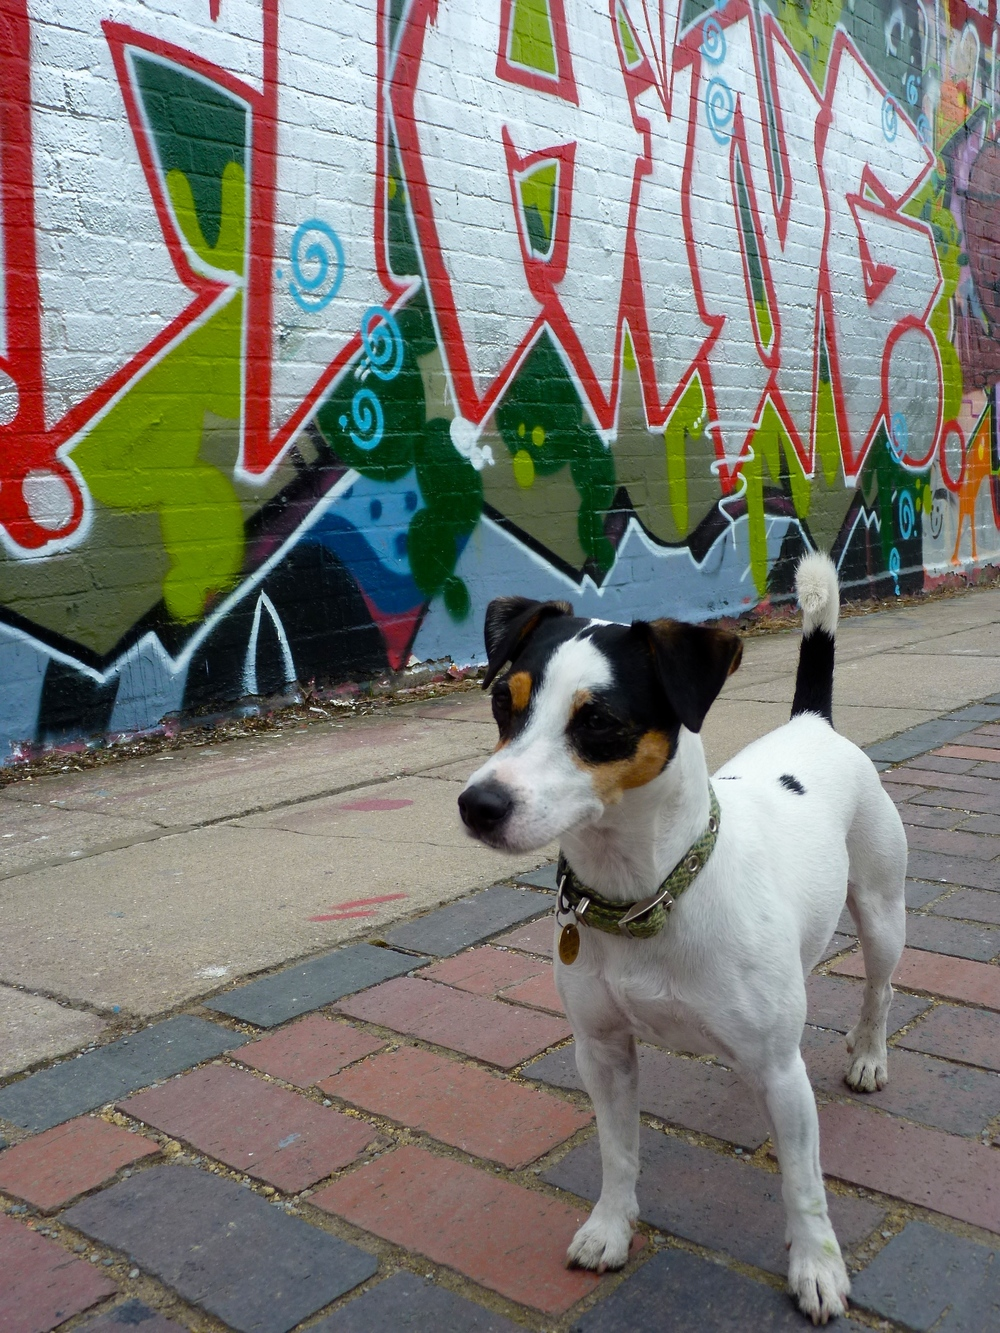 Olive Daddy likes to take pictures of graffiti art. While he takes pictures I like to smell things. My sense of smell is much better than humans. When I walk down the street and sniff, I can tell which other dogs have been there-- and what they've been eating. Isn't that cool? It's like reading a newspaper with my nose! What do you think I'm smelling now? What can you smell right now?